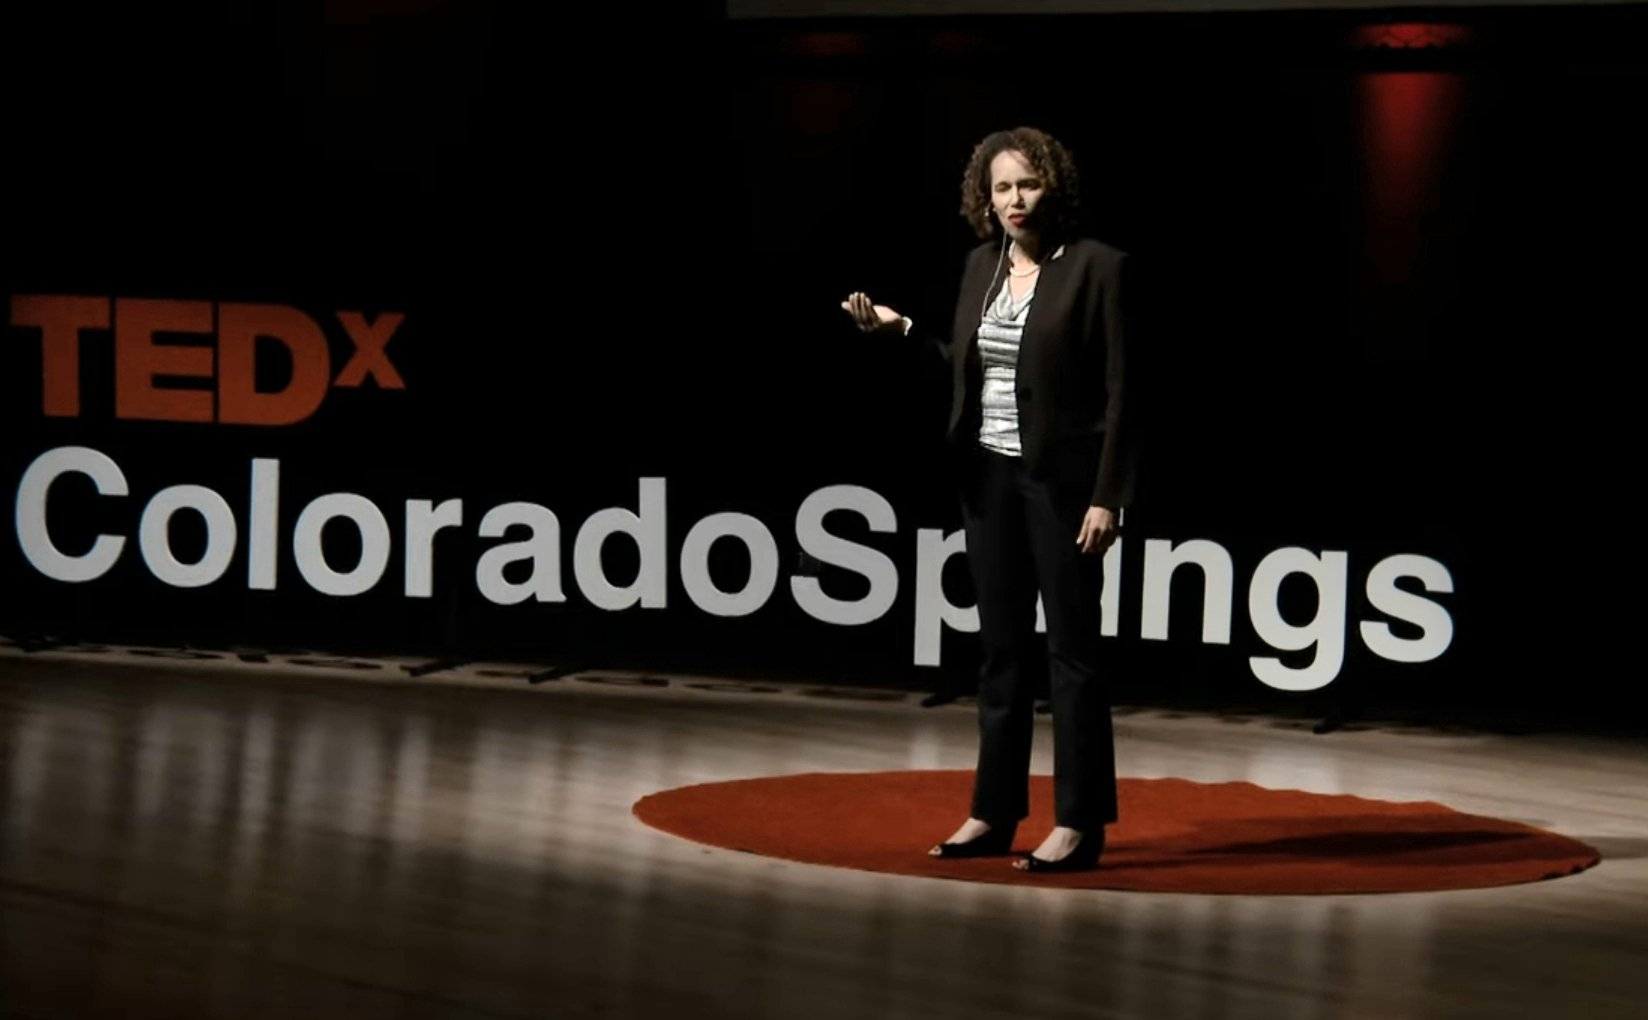 TEDx – Transforming Adversity into Opportunity